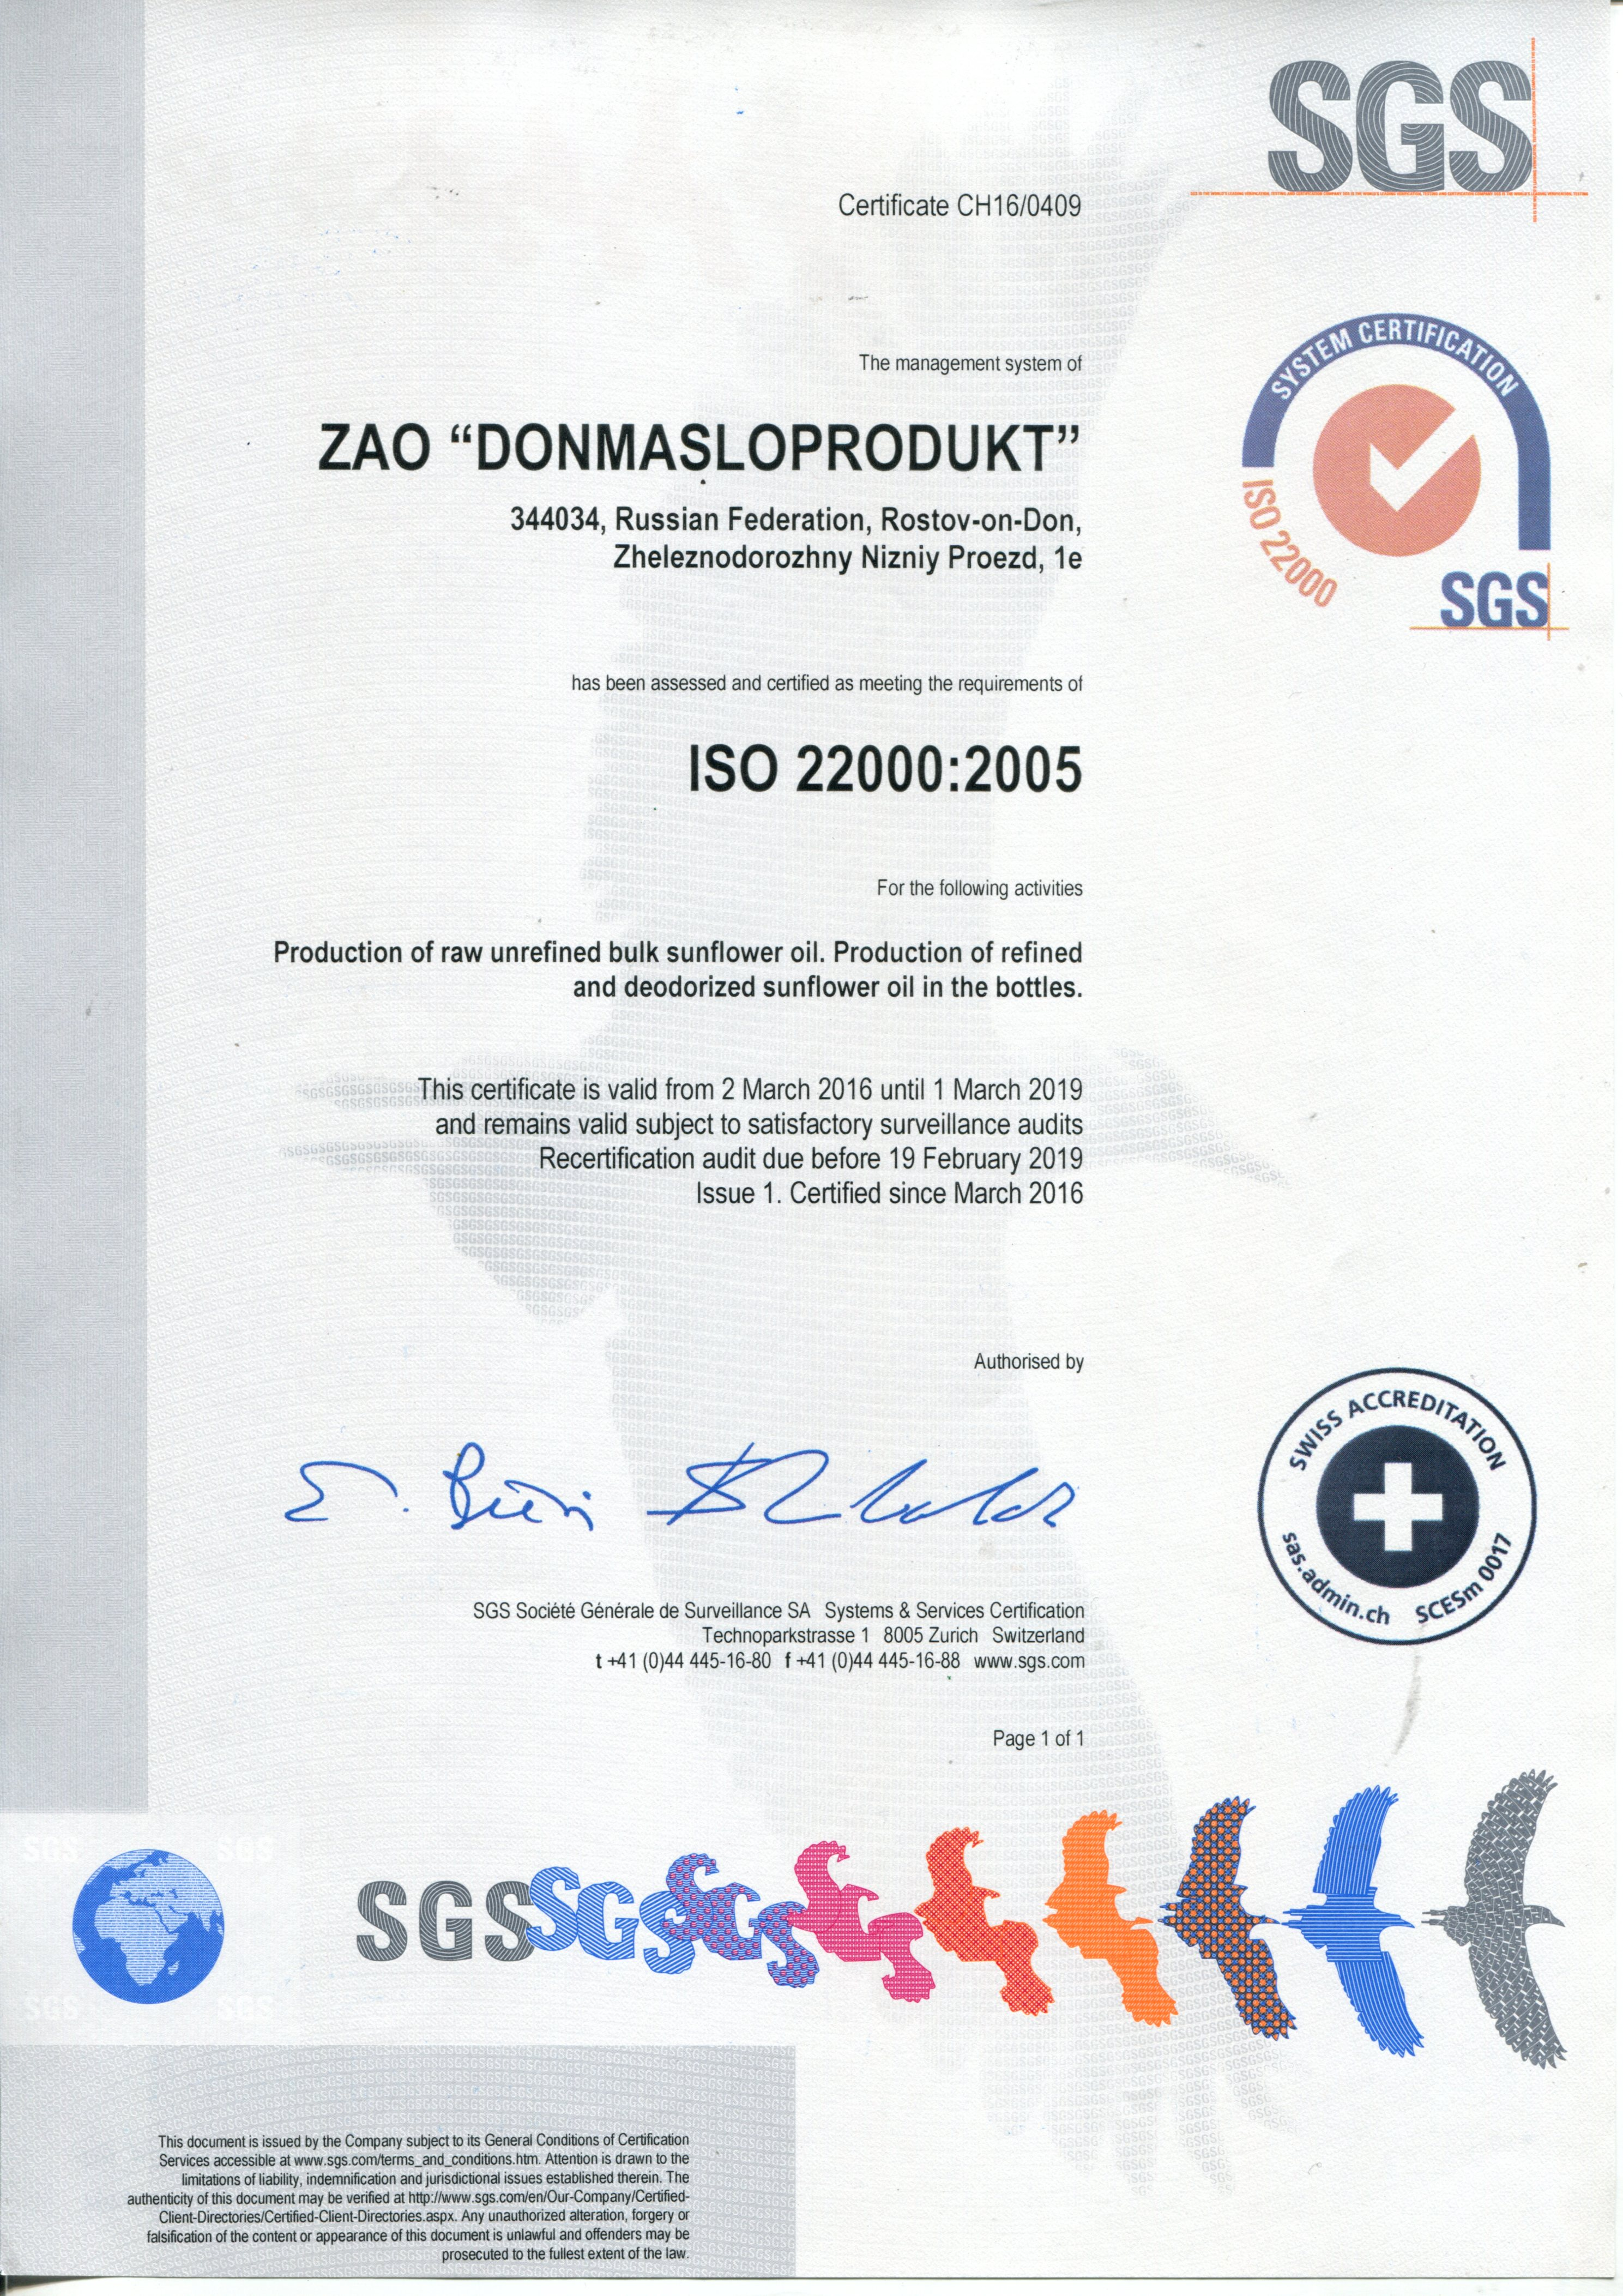 Our quality drupal in march 2016 our company is certified according to iso 220002005 xflitez Gallery